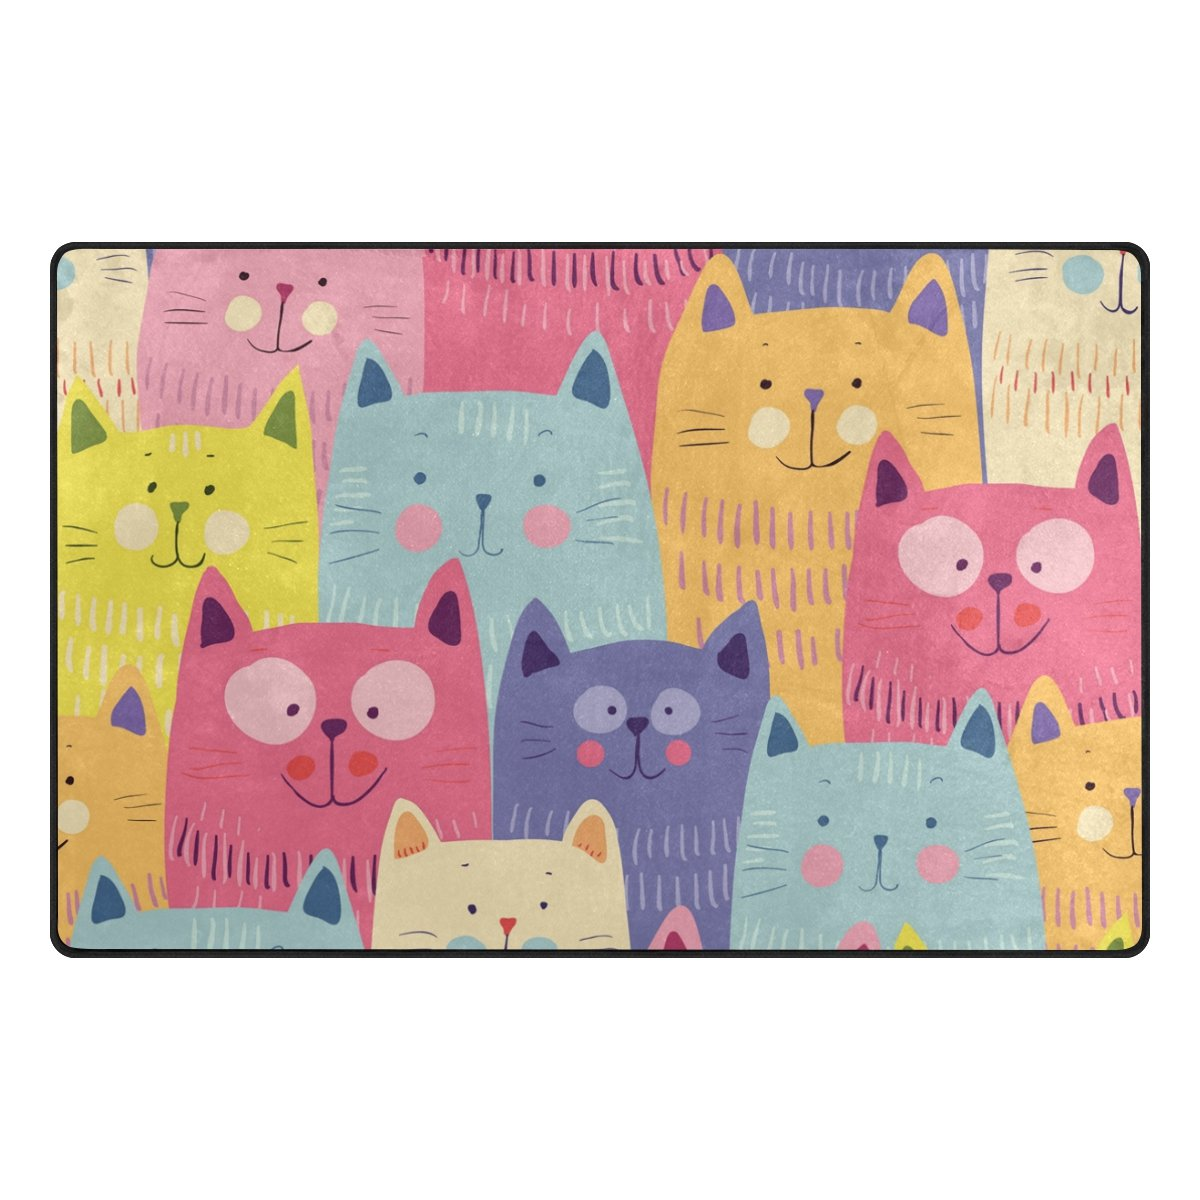 ALAZA Funny Cute Cats Colorful Area Rug 20'' x 31'', Door Mat for Living Room Bedroom Kitchen Bathroom Decorative Lightweight Foam Printed Rug